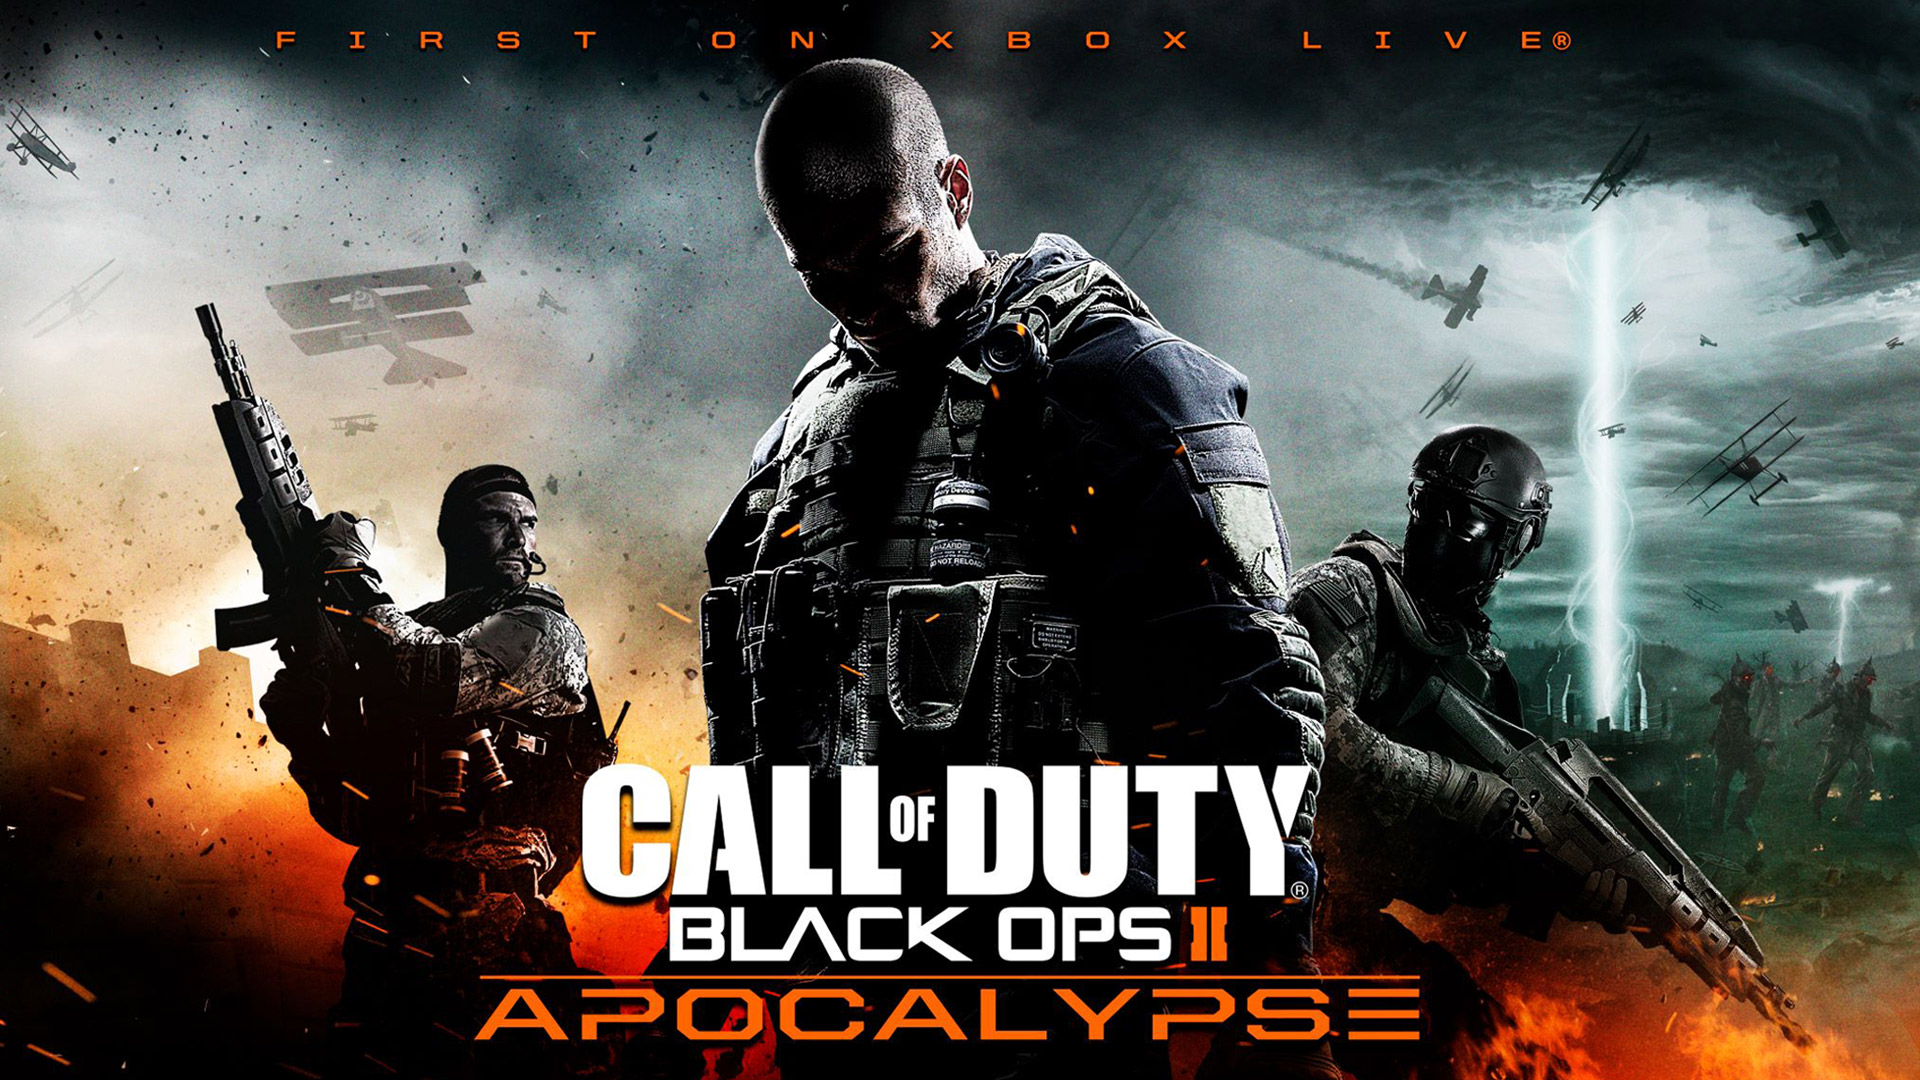 Call of Duty: Black Ops 2 Wallpaper in 1920x1080